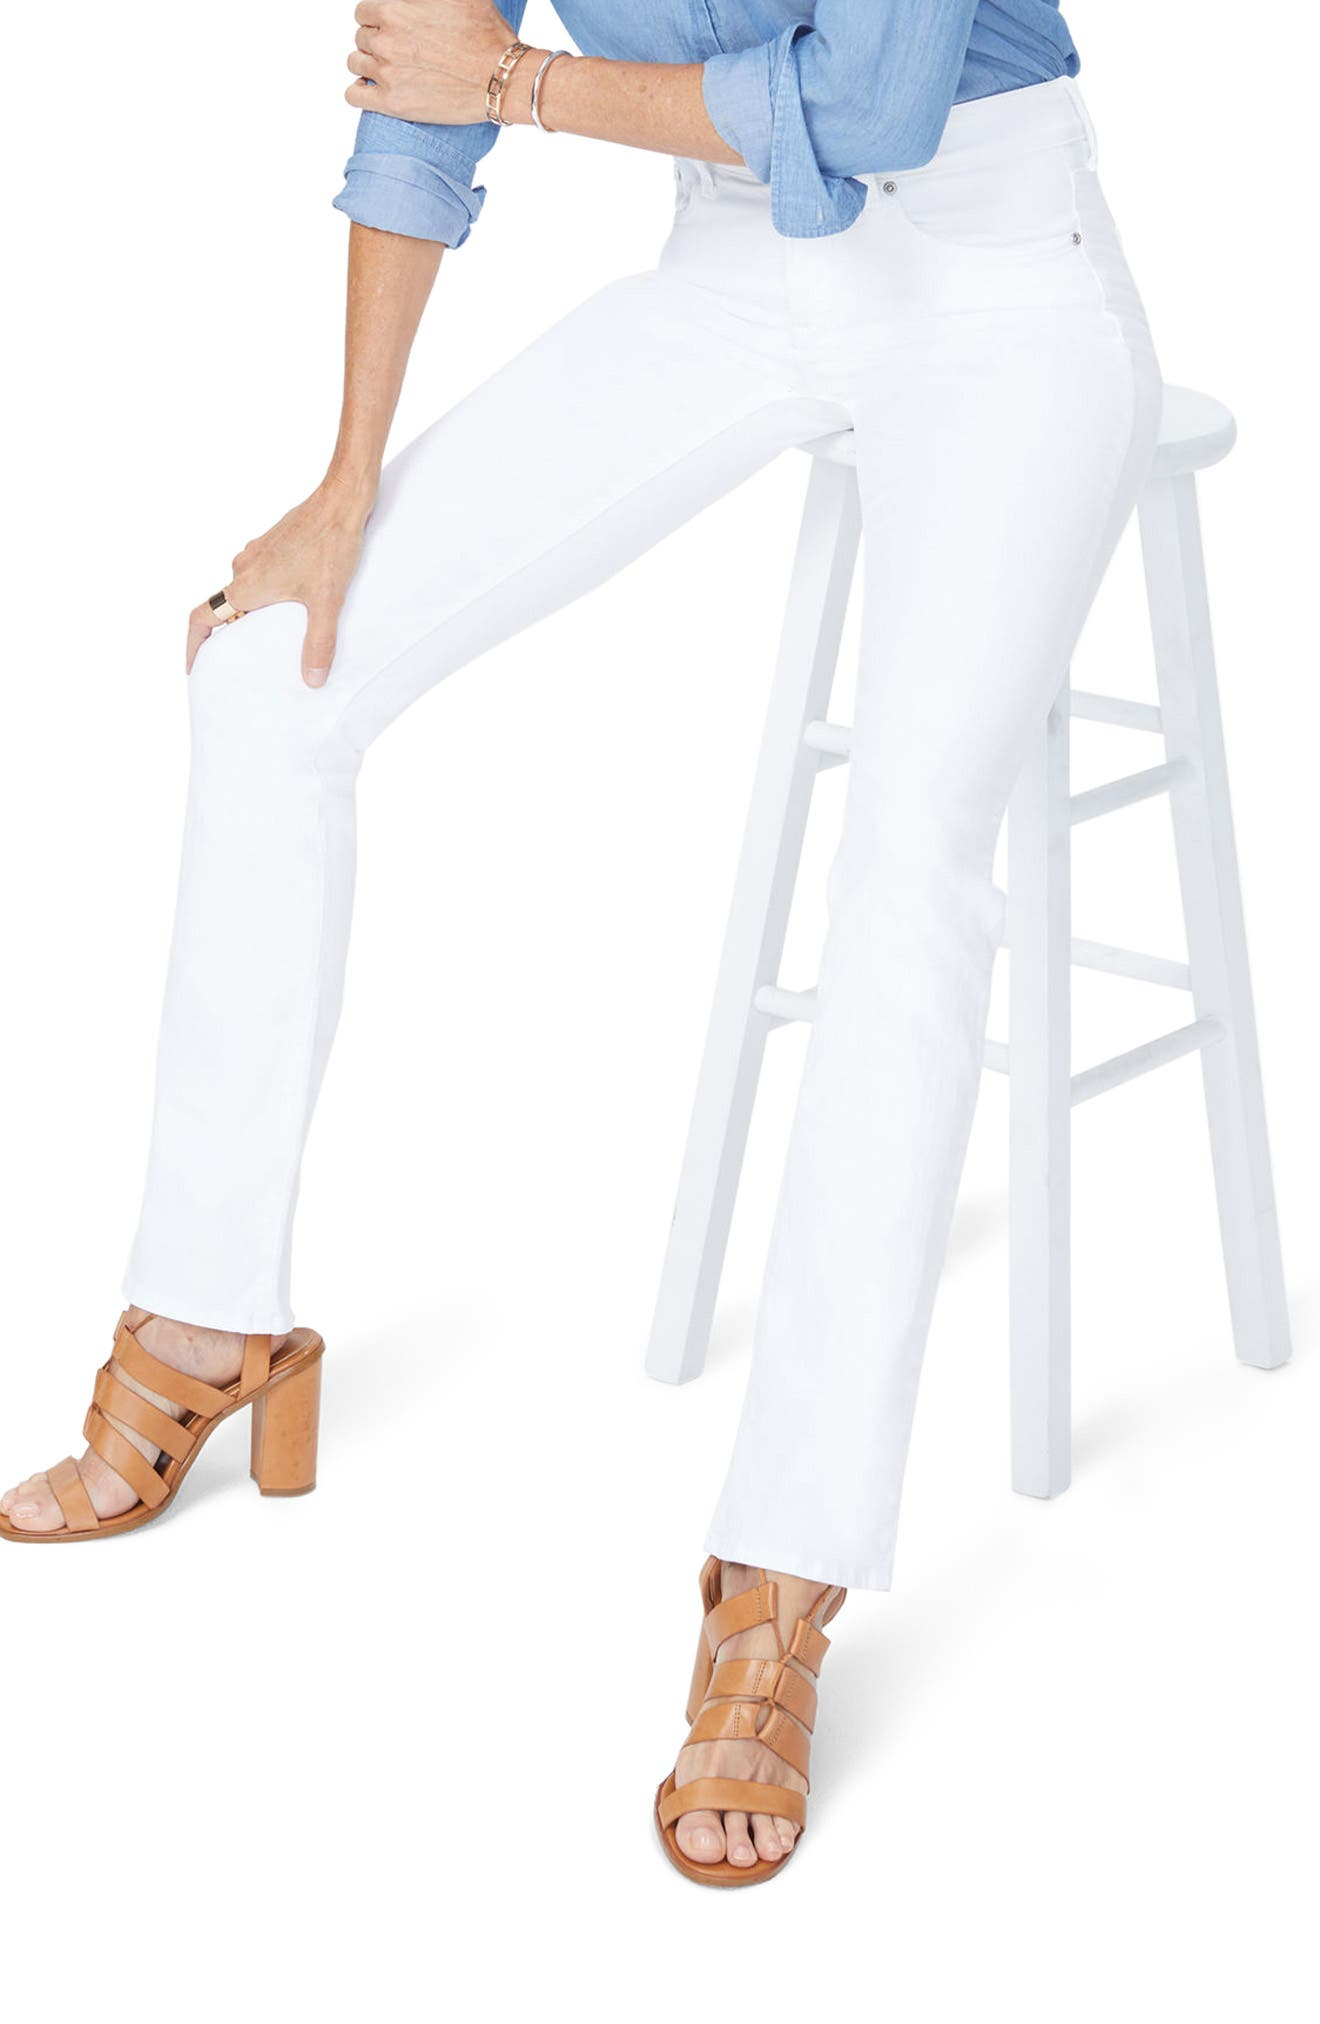 Billie Mini Bootcut Jeans,                             Main thumbnail 1, color,                             Optic White